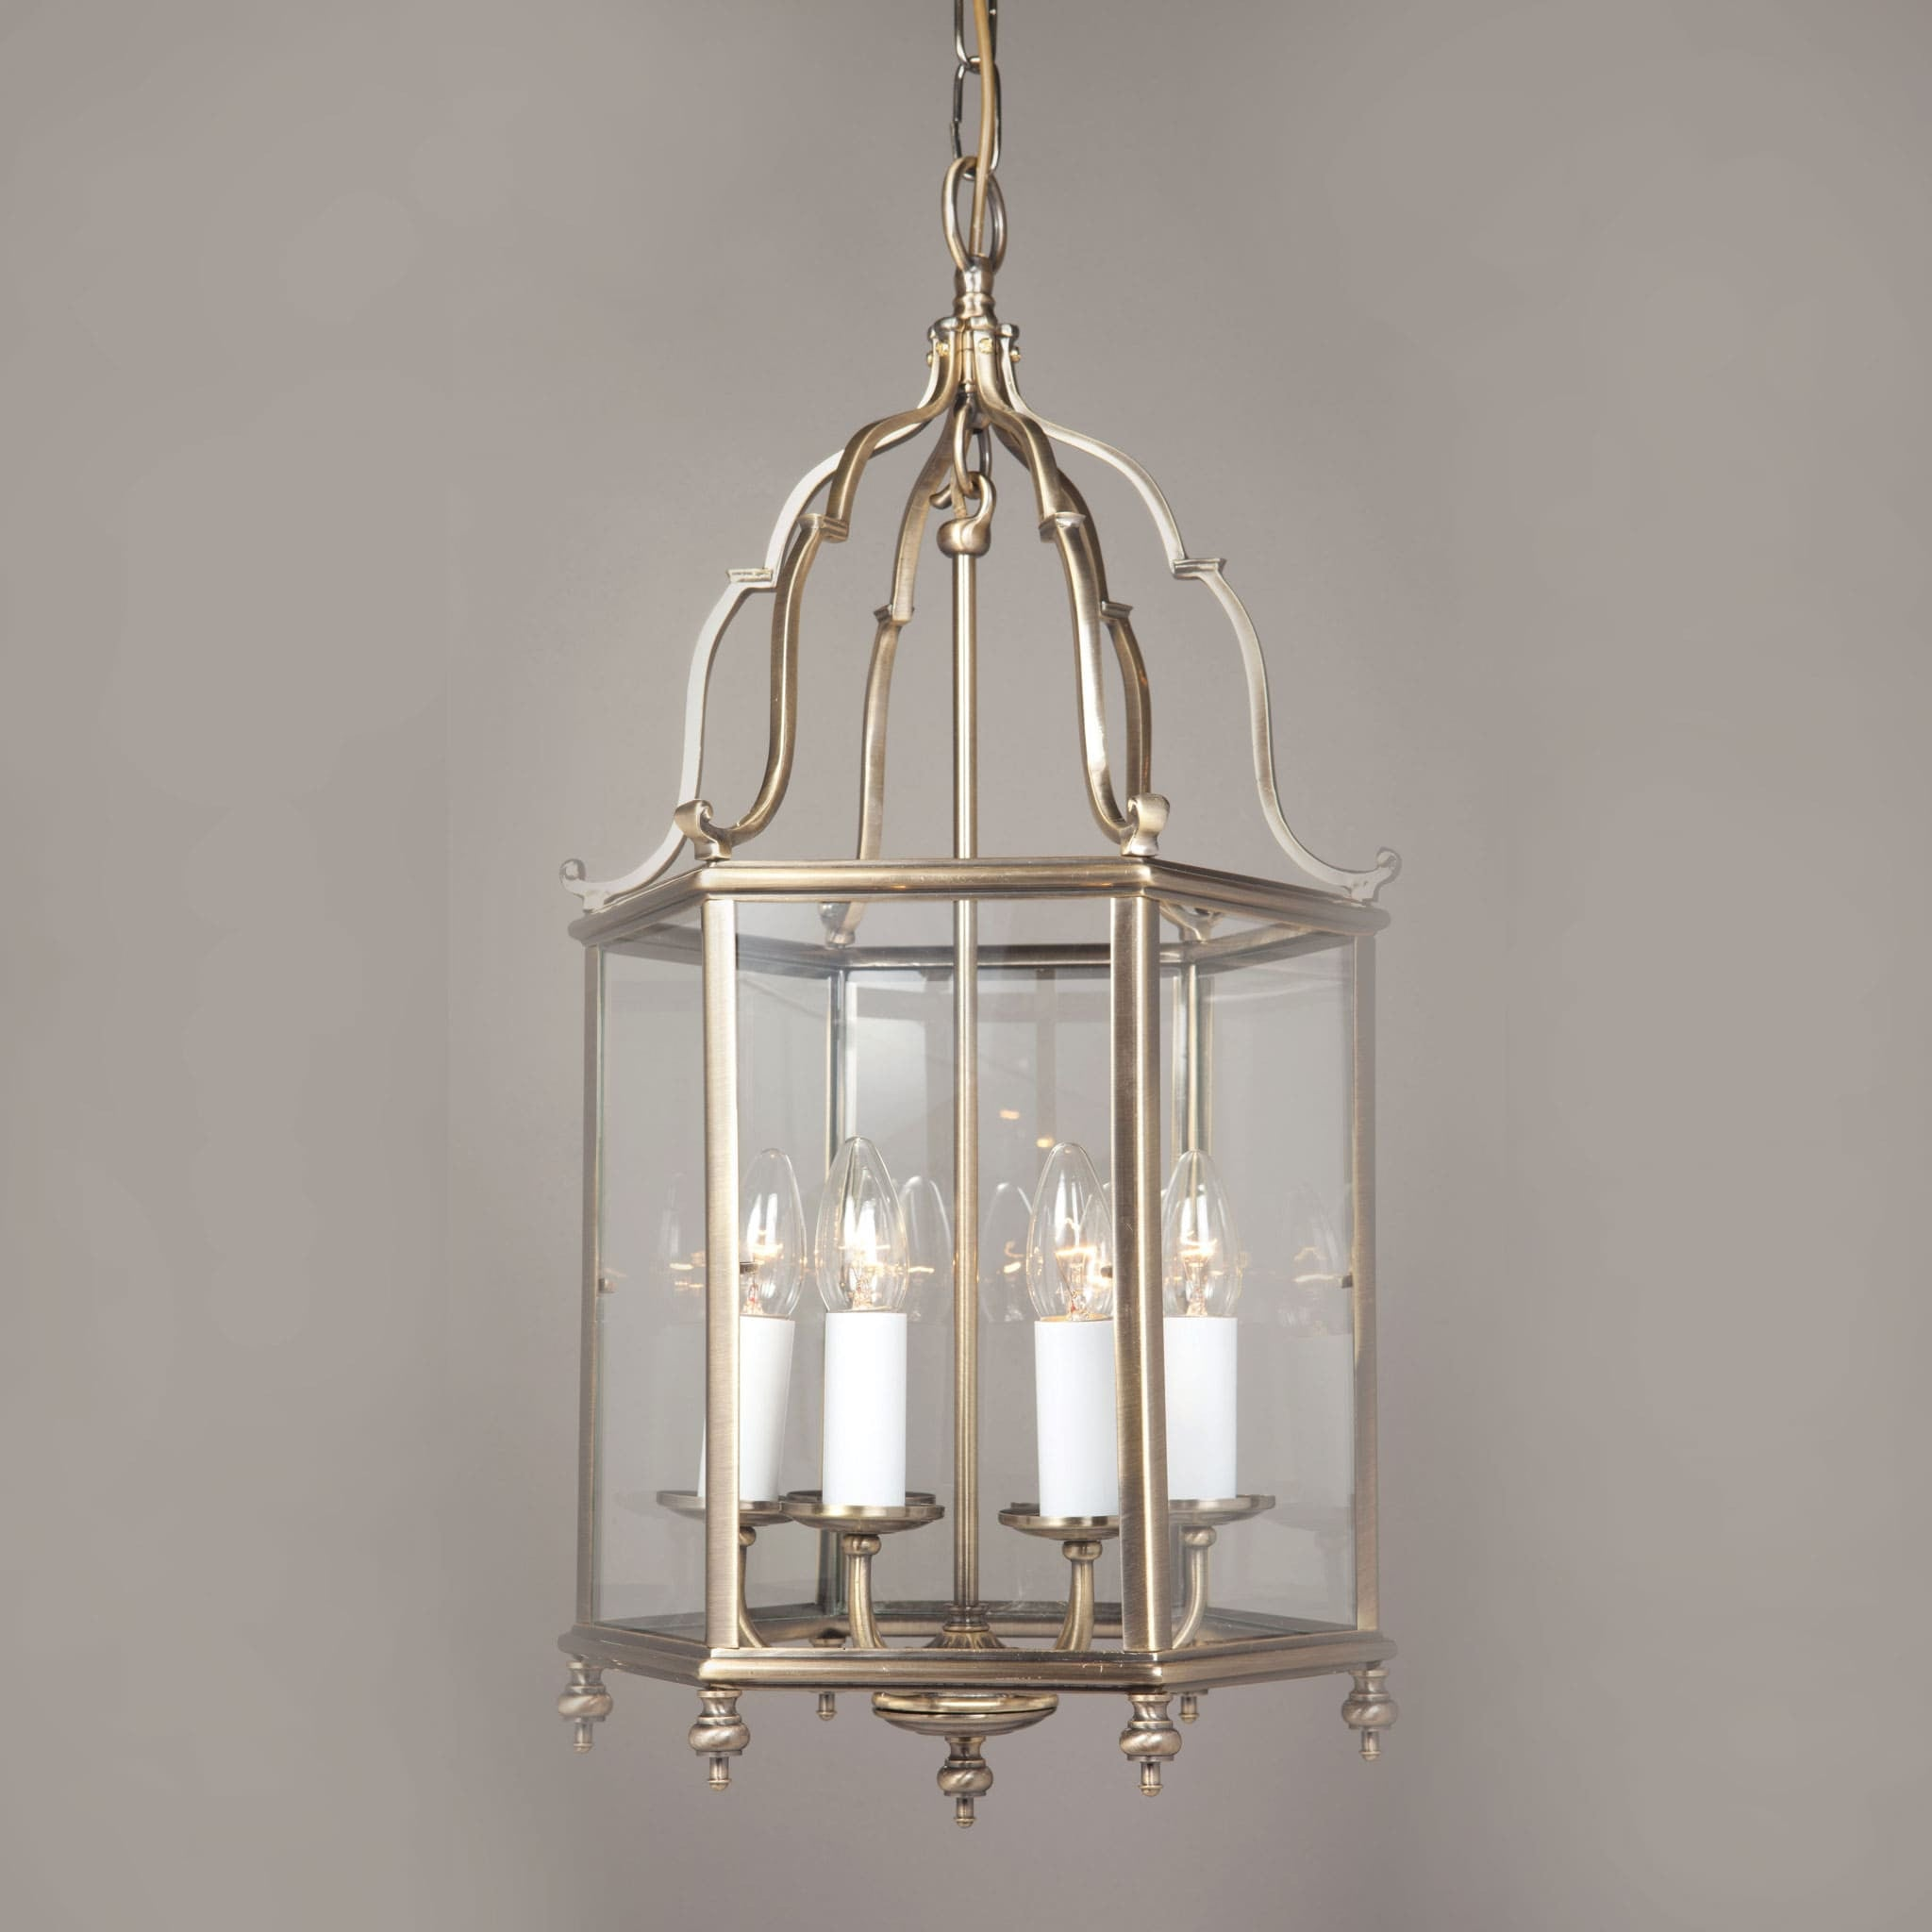 lantern excellent nicke for lights nickel silver brushed pendant kitchen amusing